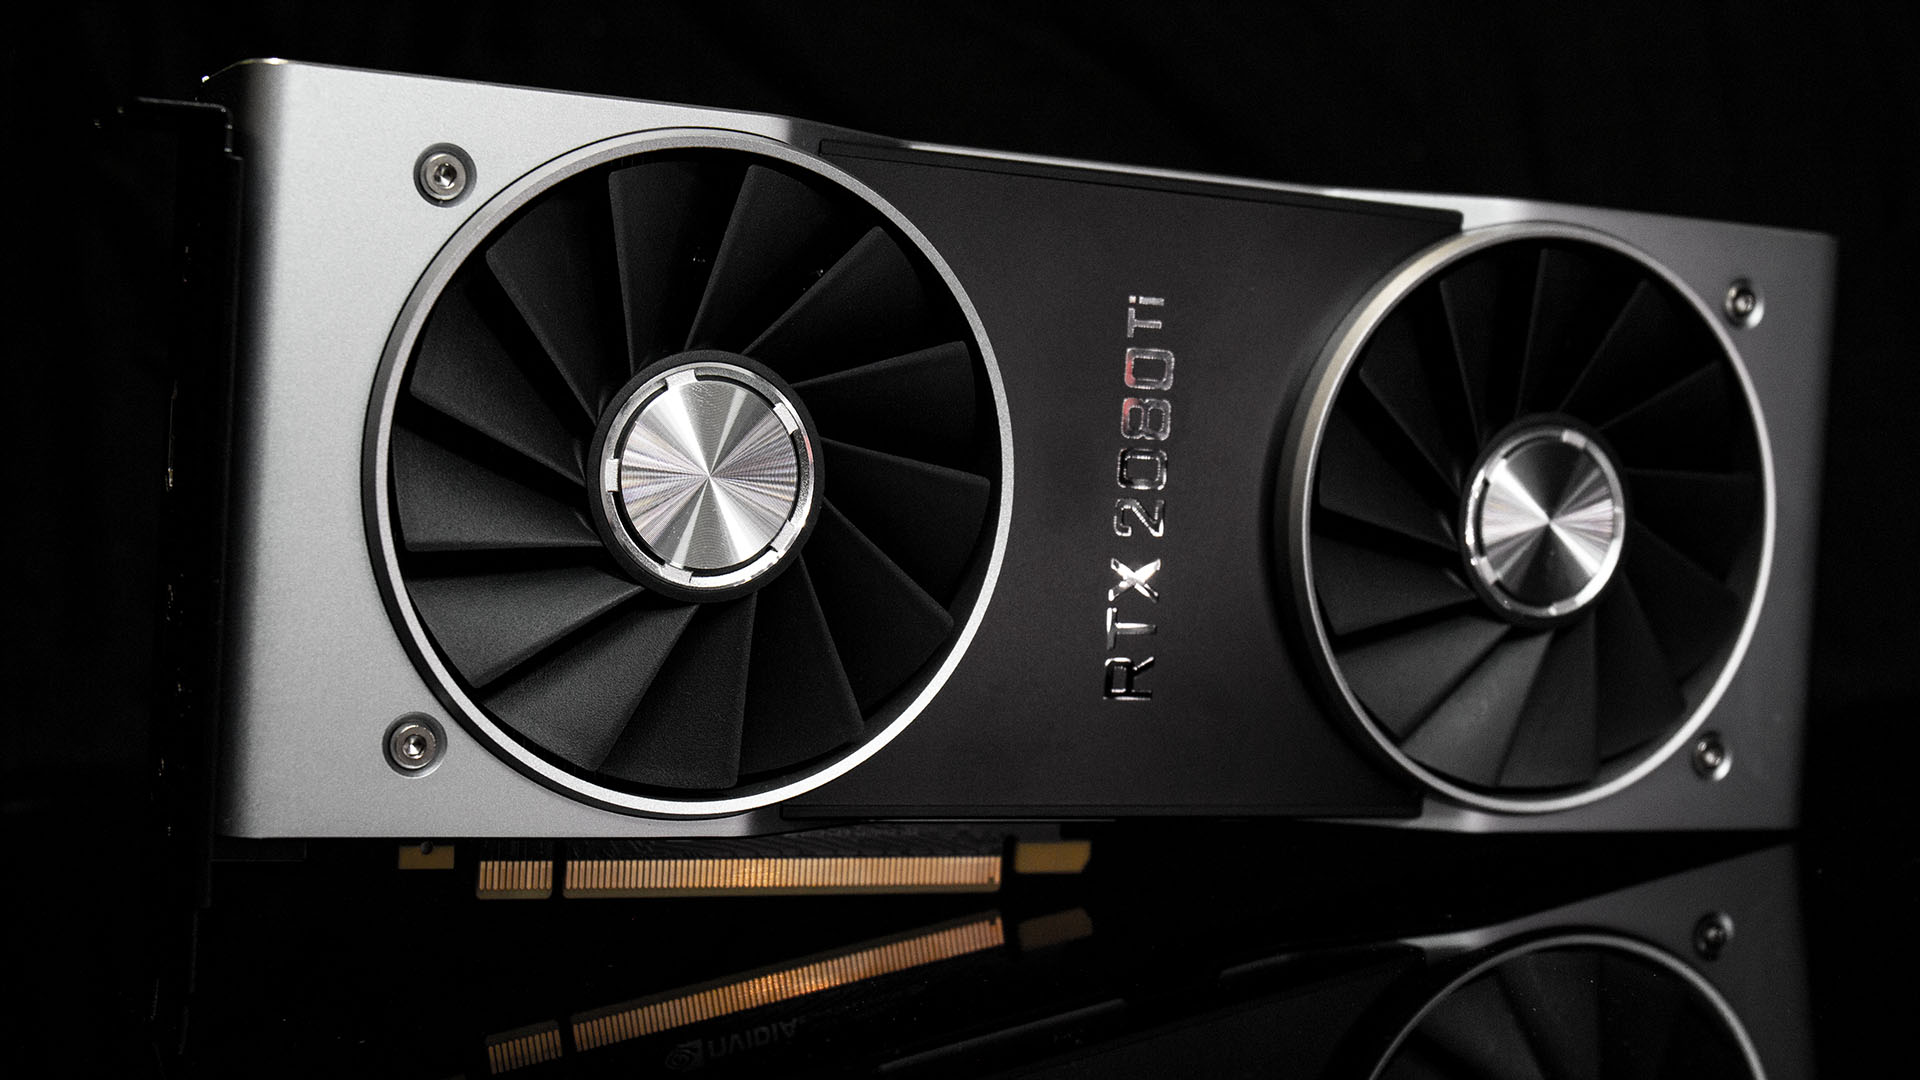 """Nvidia """"not seeing any broader issues"""" with RTX 2080 Ti graphics"""